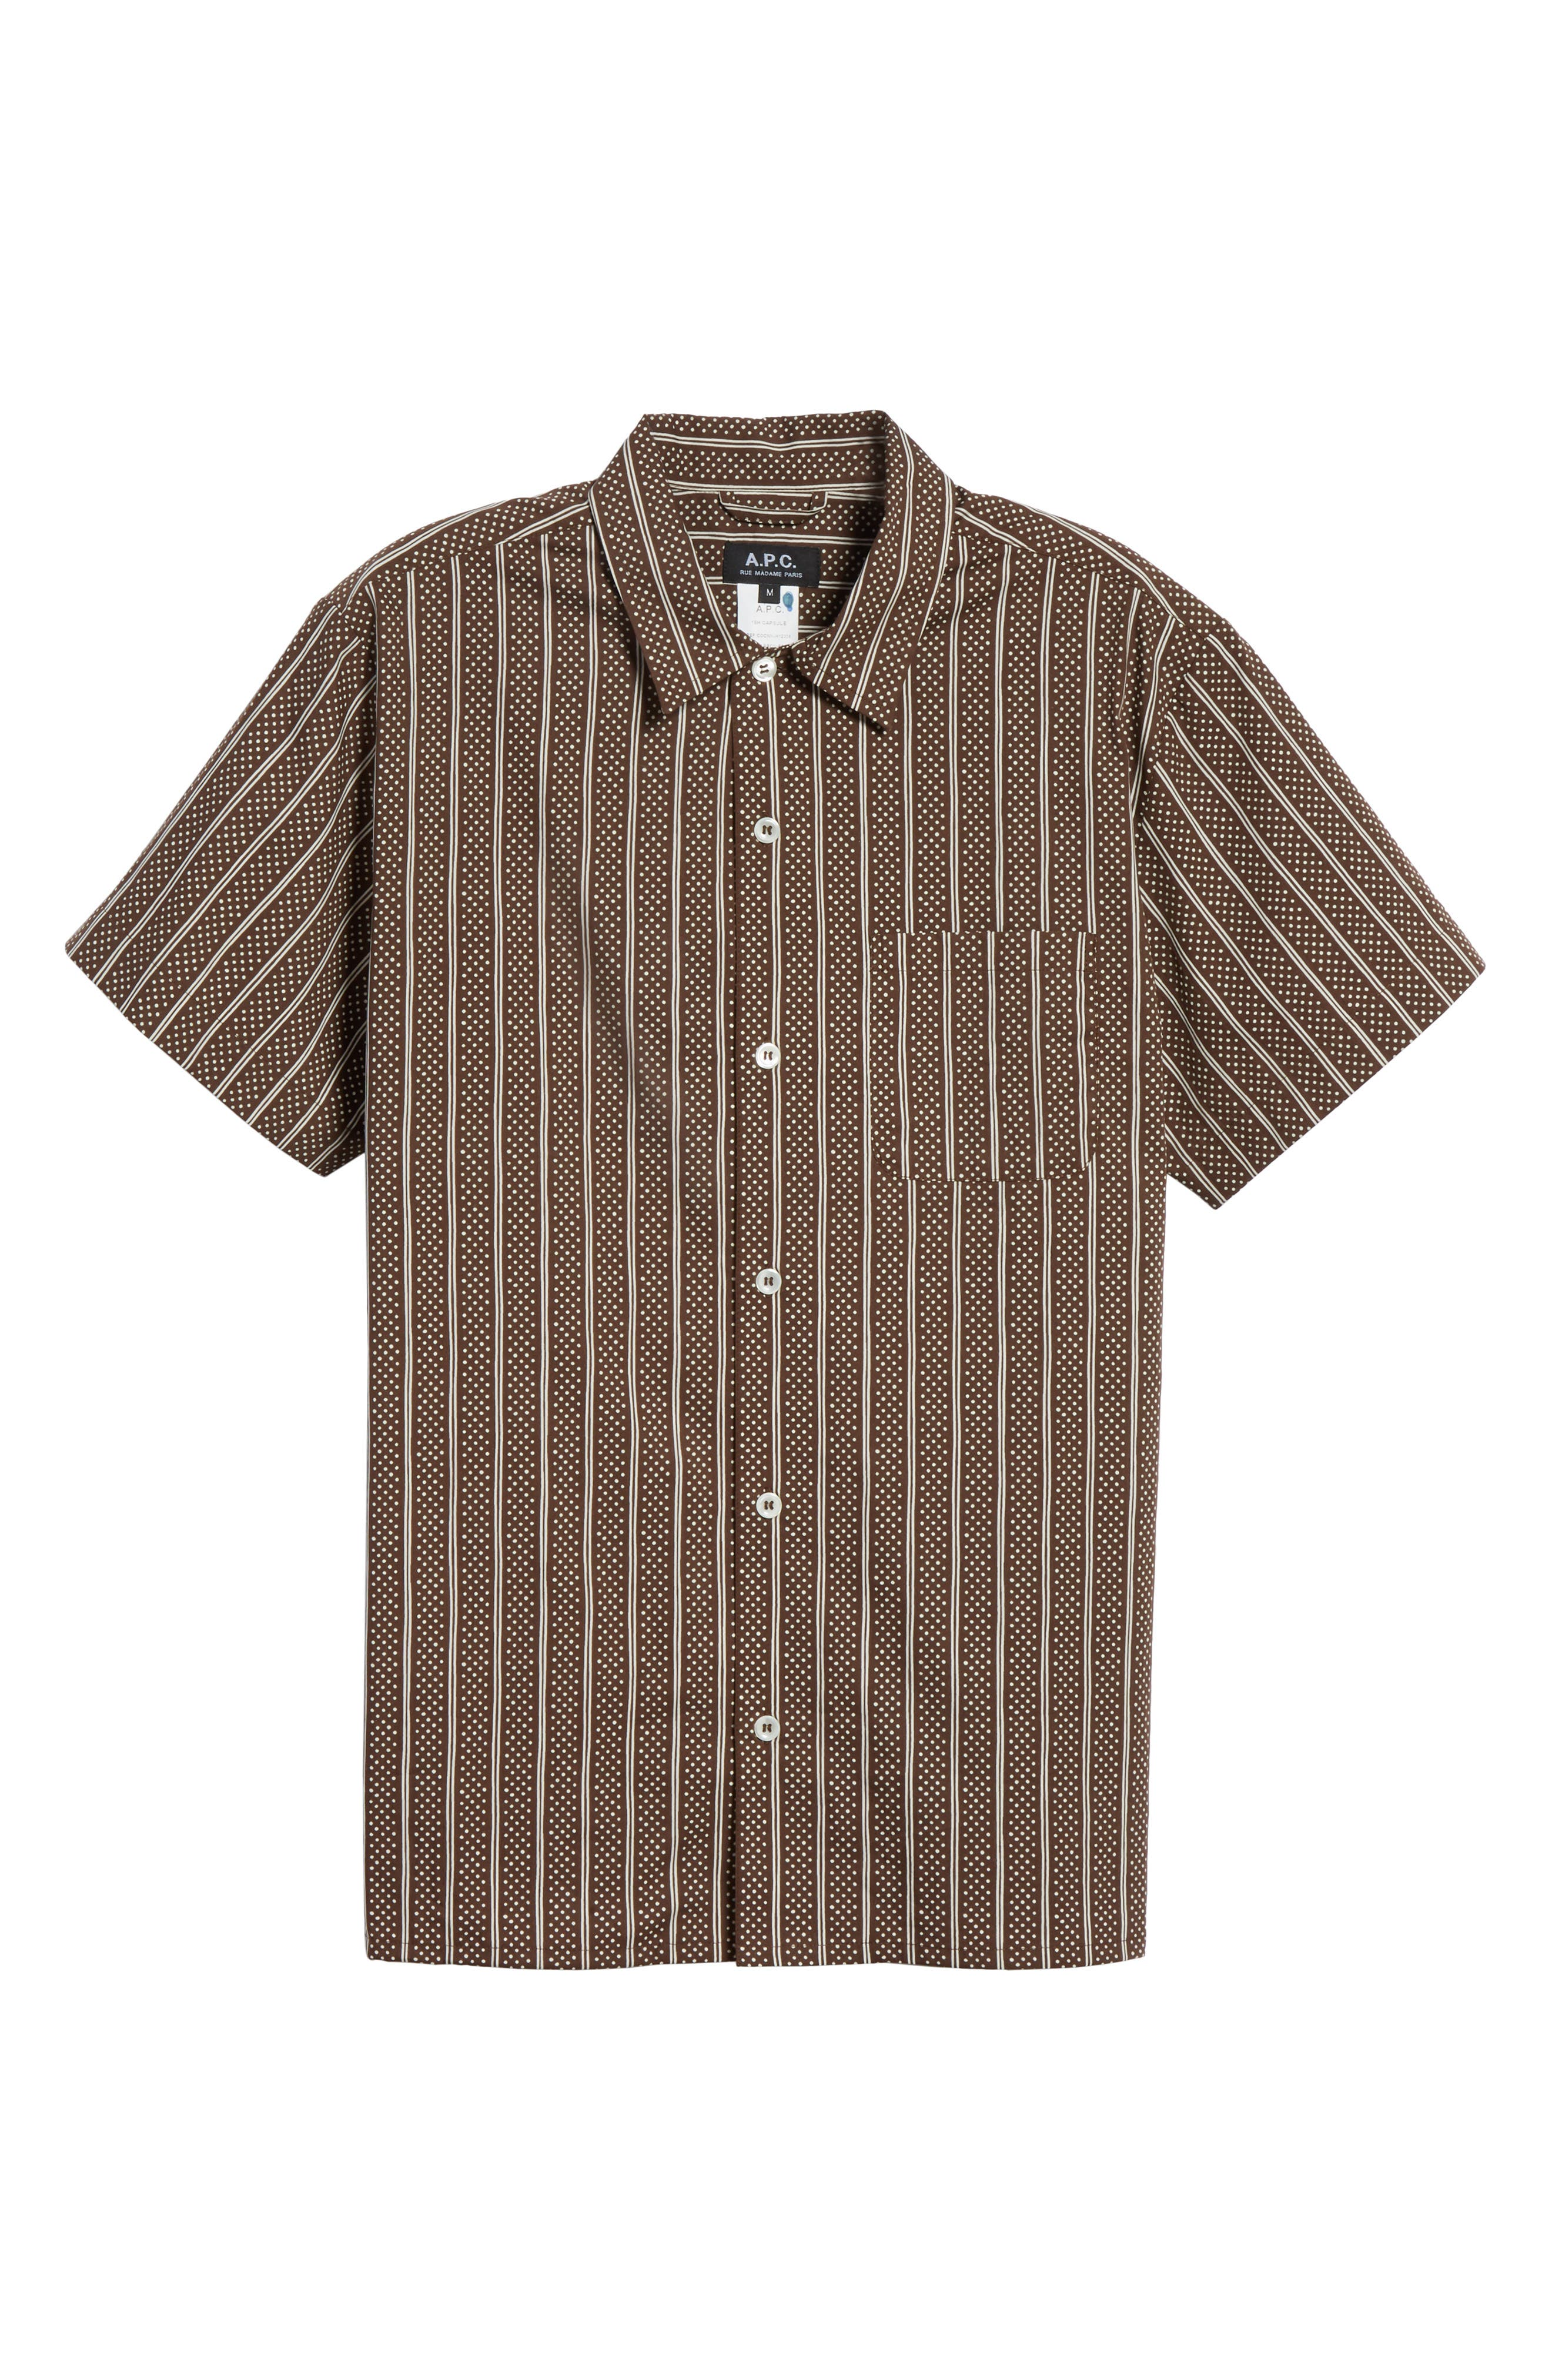 Wonder Sport Shirt,                             Alternate thumbnail 6, color,                             Marron